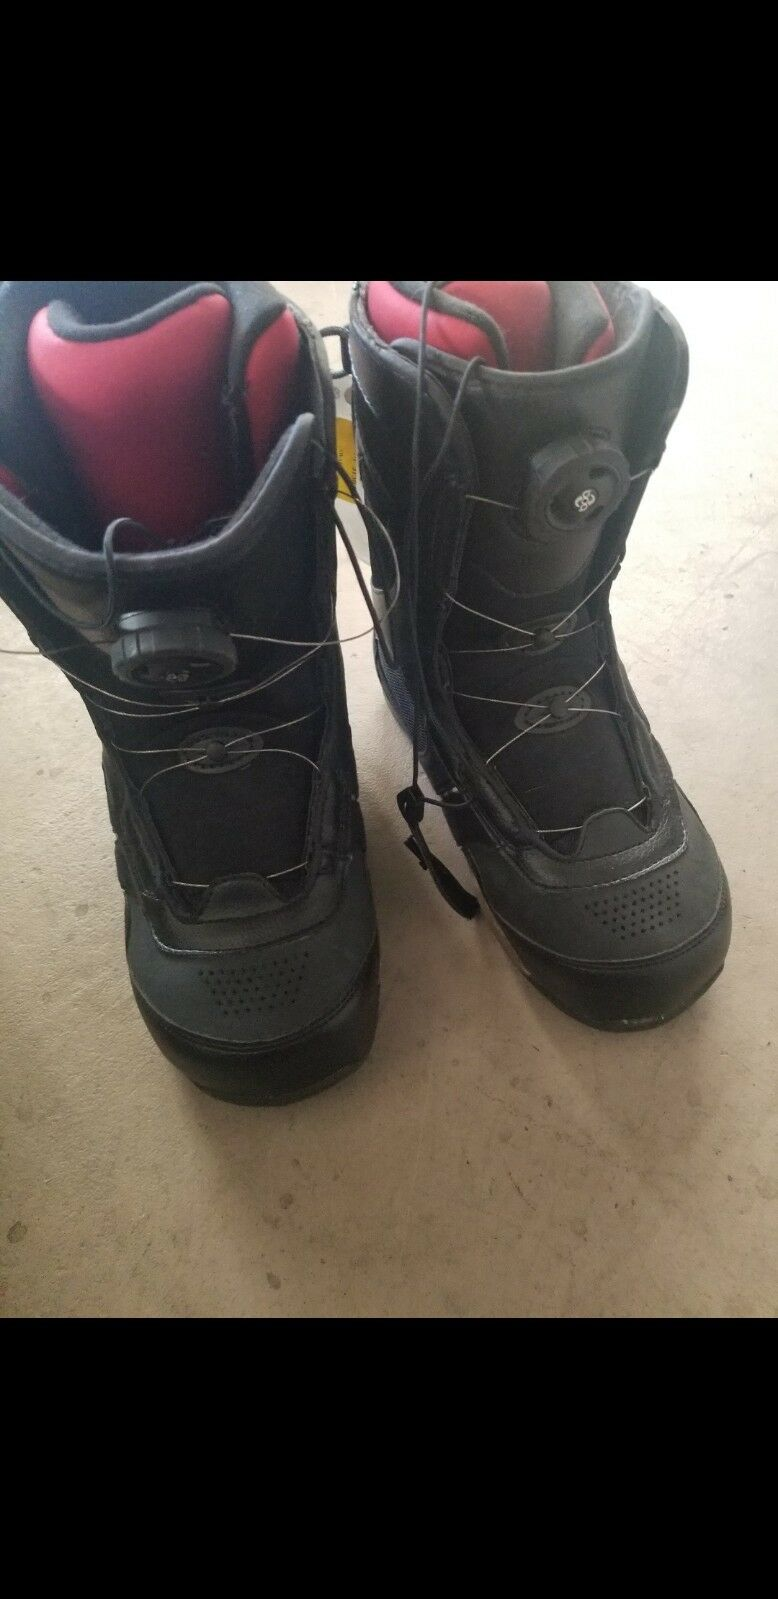 5150  Men's Snowboard boots never worn snowboarding US size mens 8.5